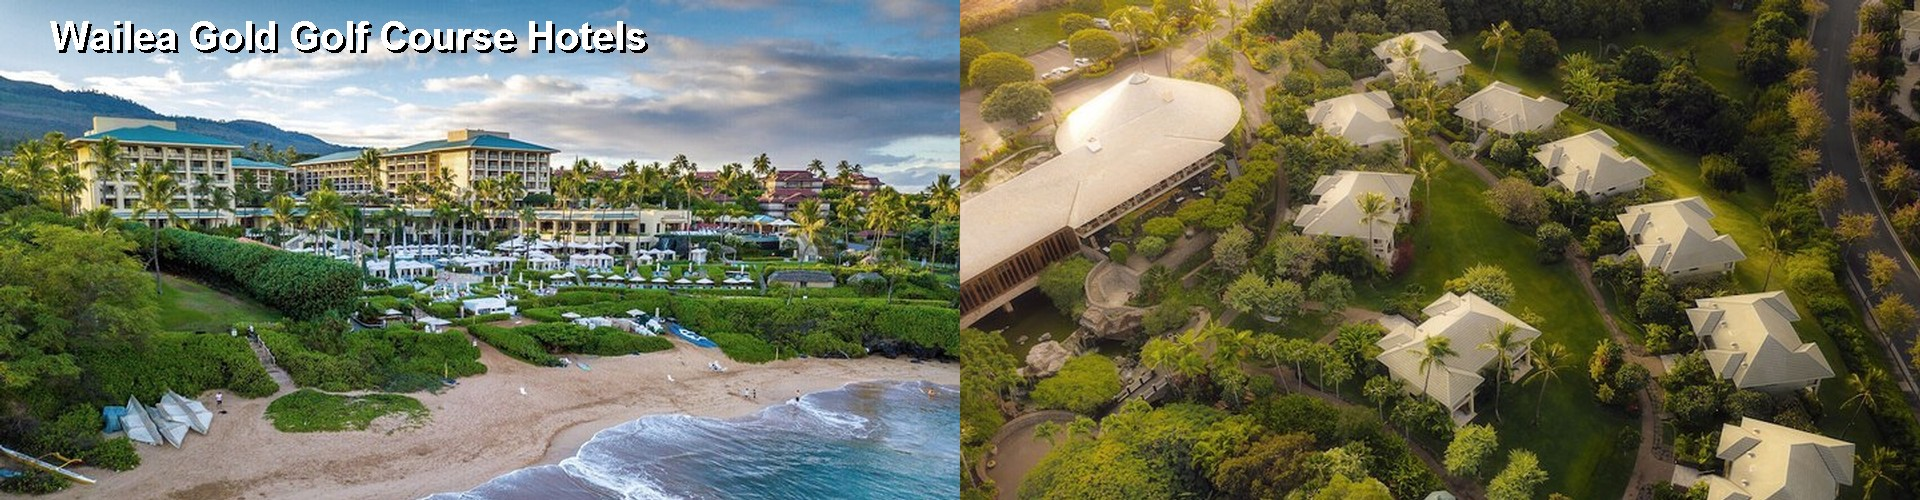 5 Best Hotels near Wailea Gold Golf Course